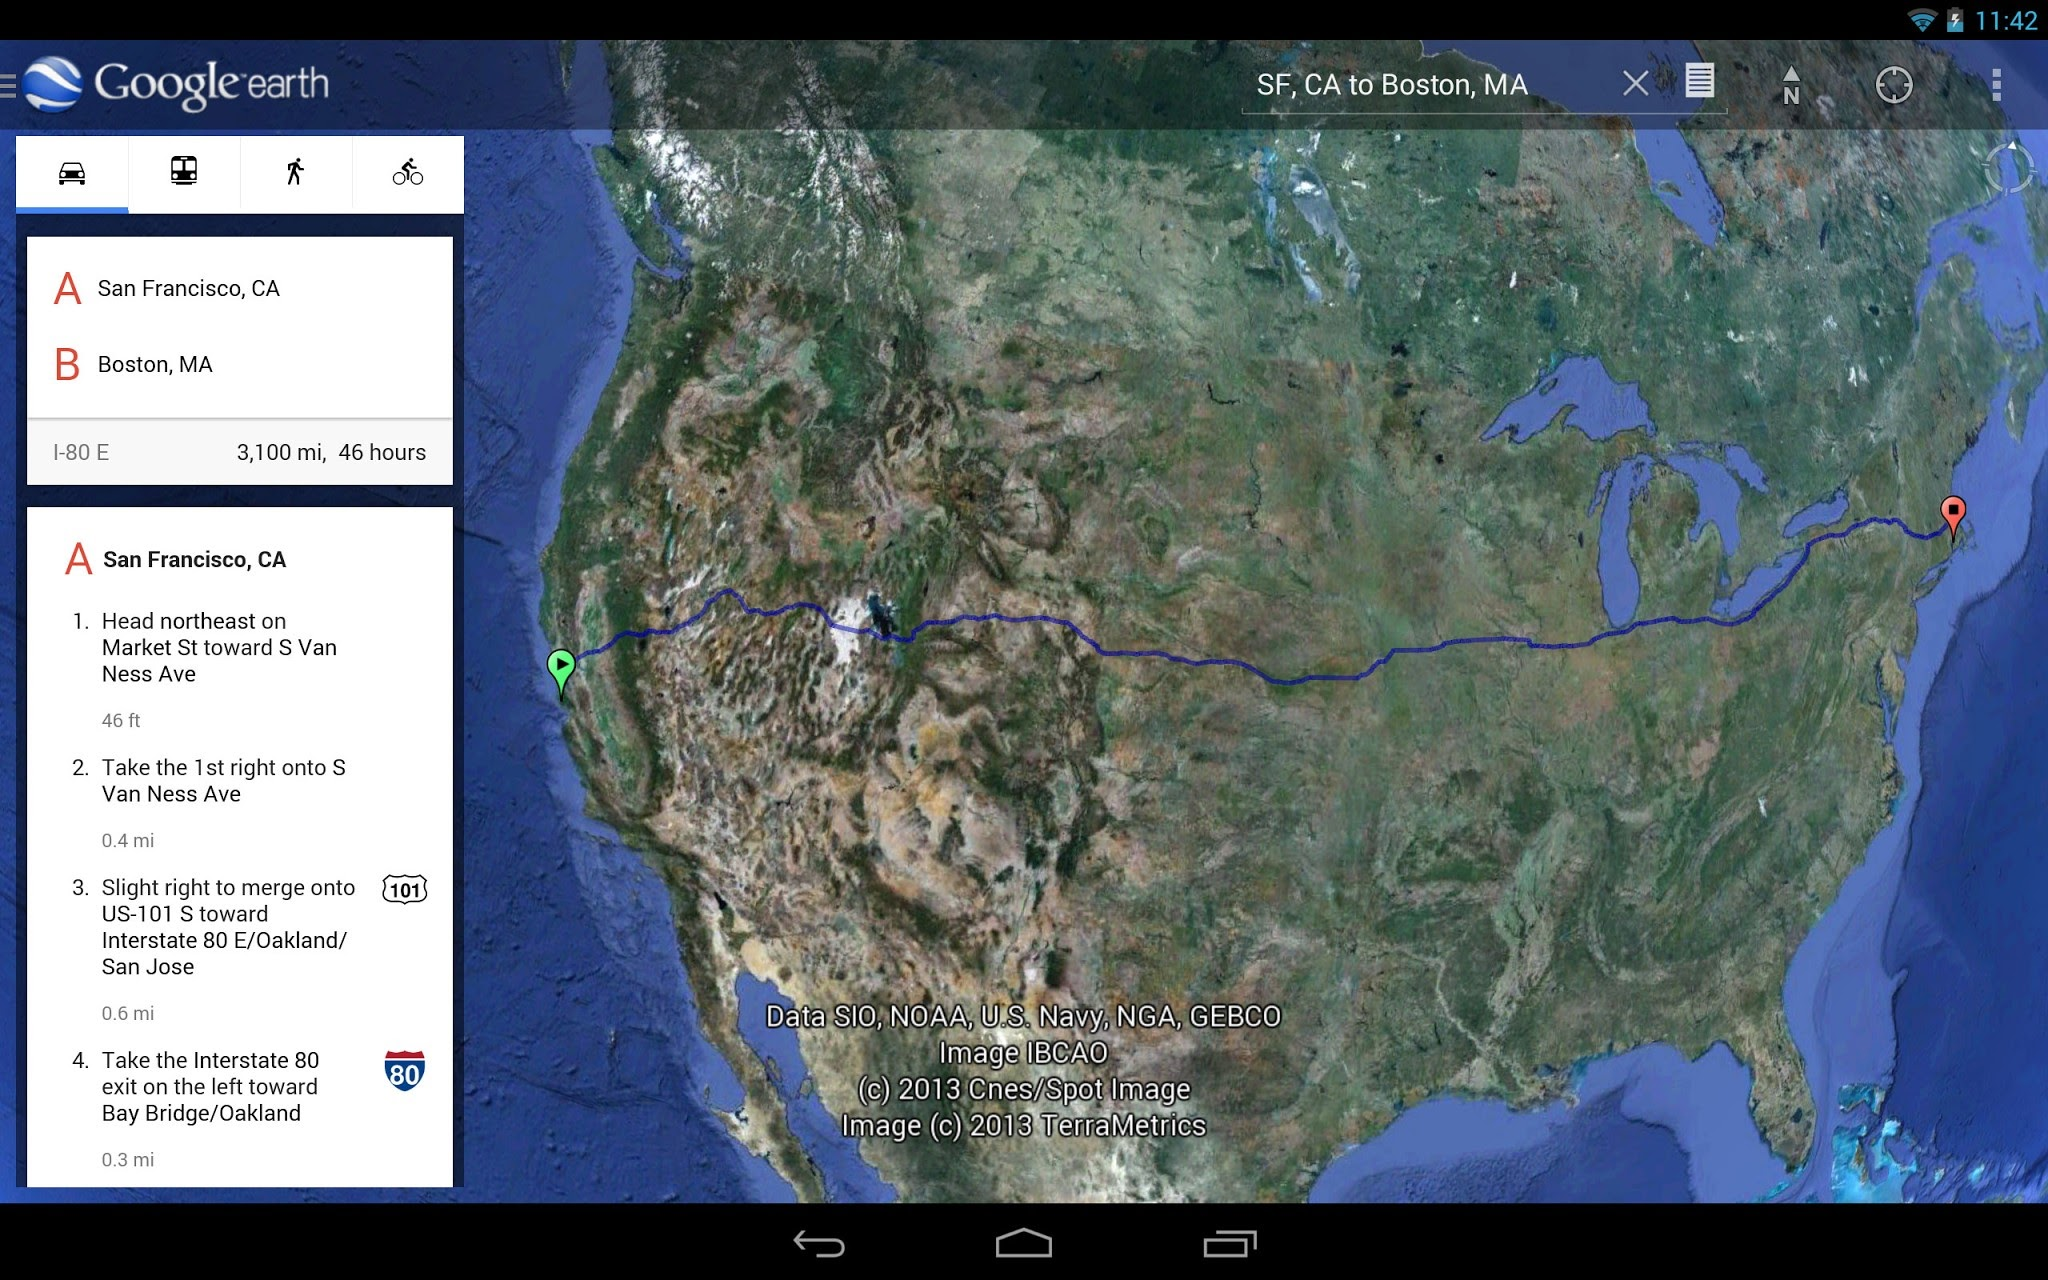 google earth 71 now available on android earth explorers rejoice hot on th